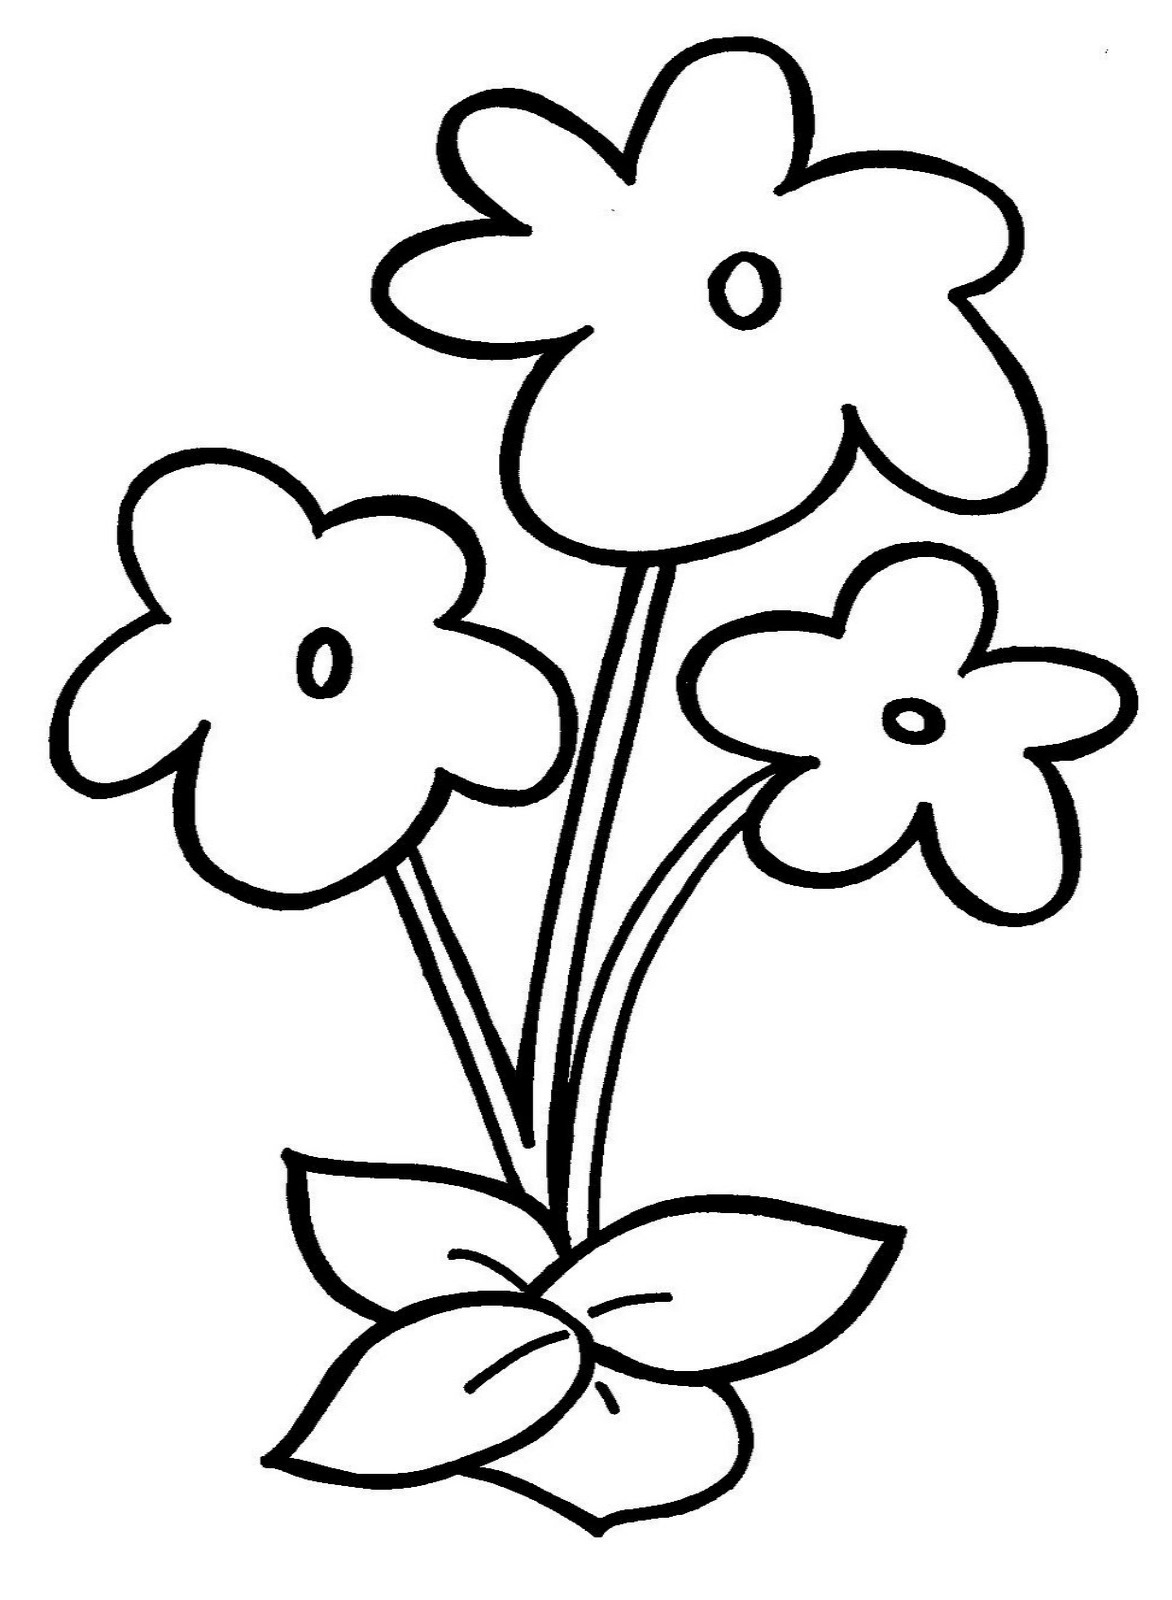 coloring pages of a flower flowers printing pages creative children pages coloring flower of a